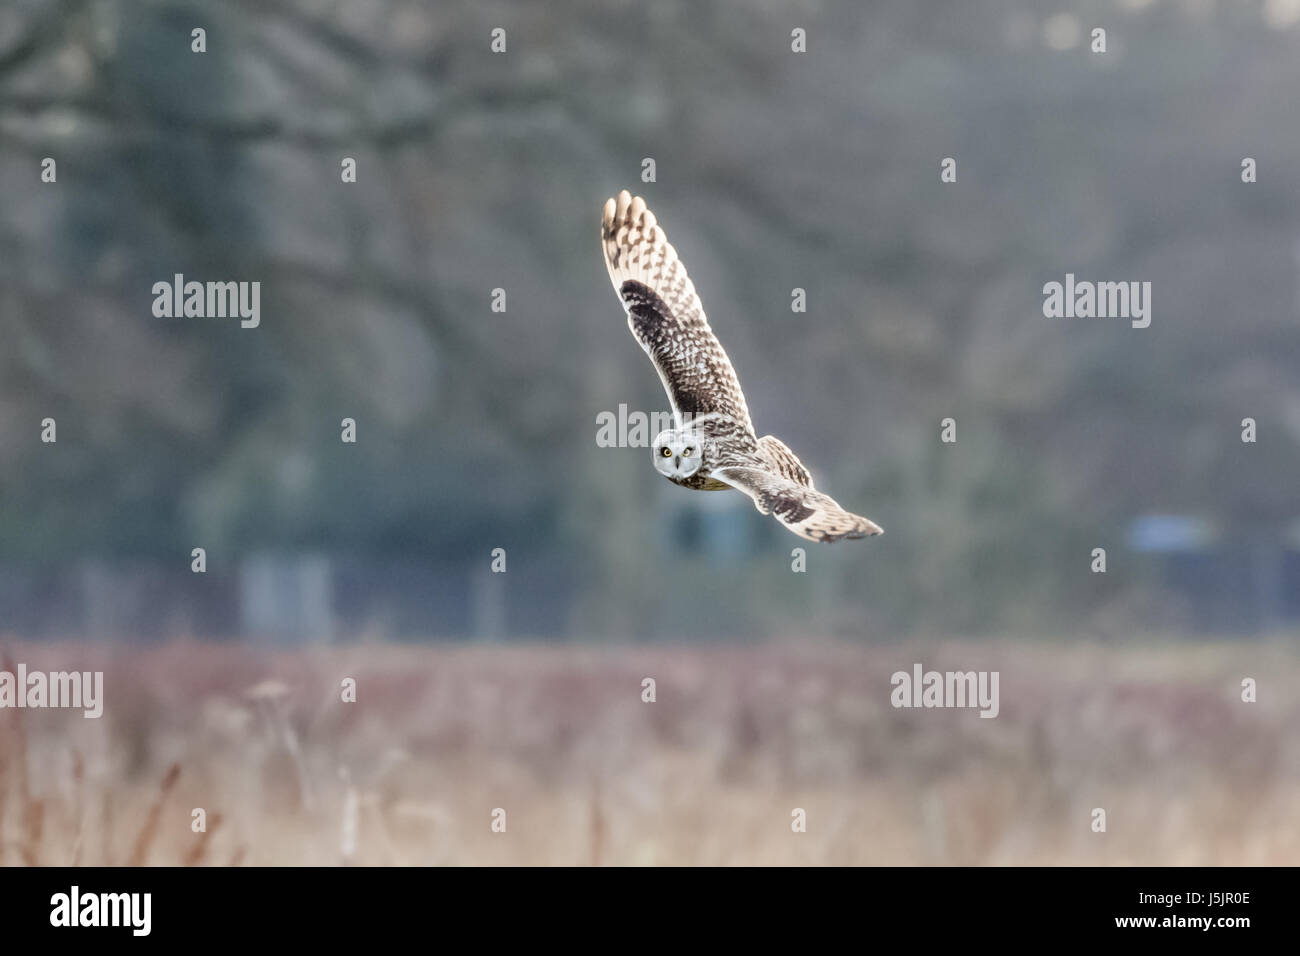 Short-eared Owl (Asio flammeus)  hunting banking flying over meadow - Stock Image